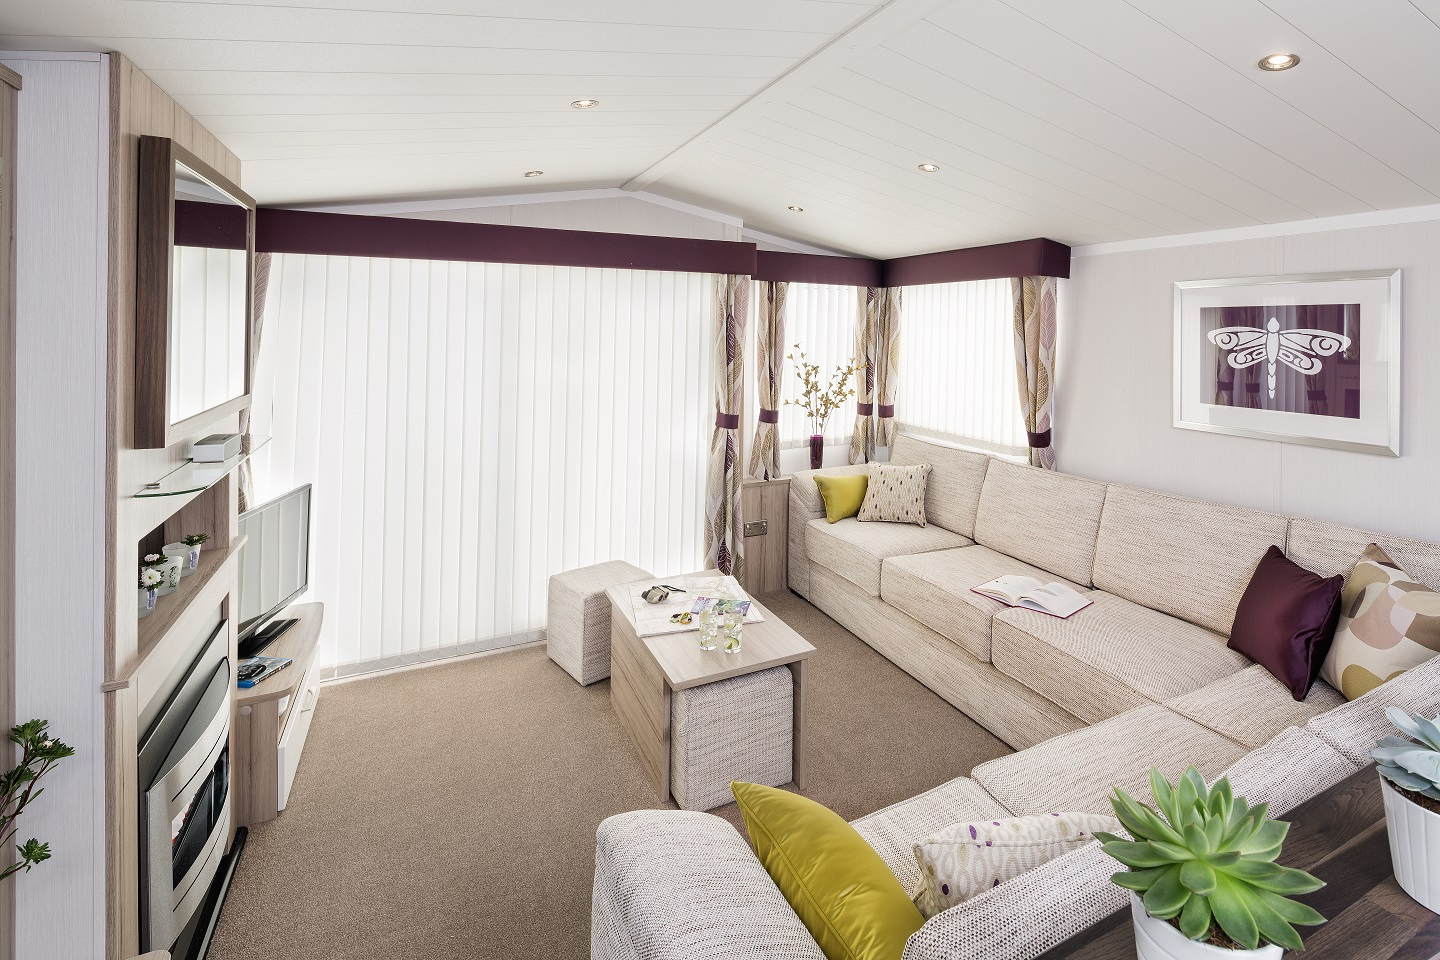 Swift Moselle east yorkshire ideal caravans Large Image 1